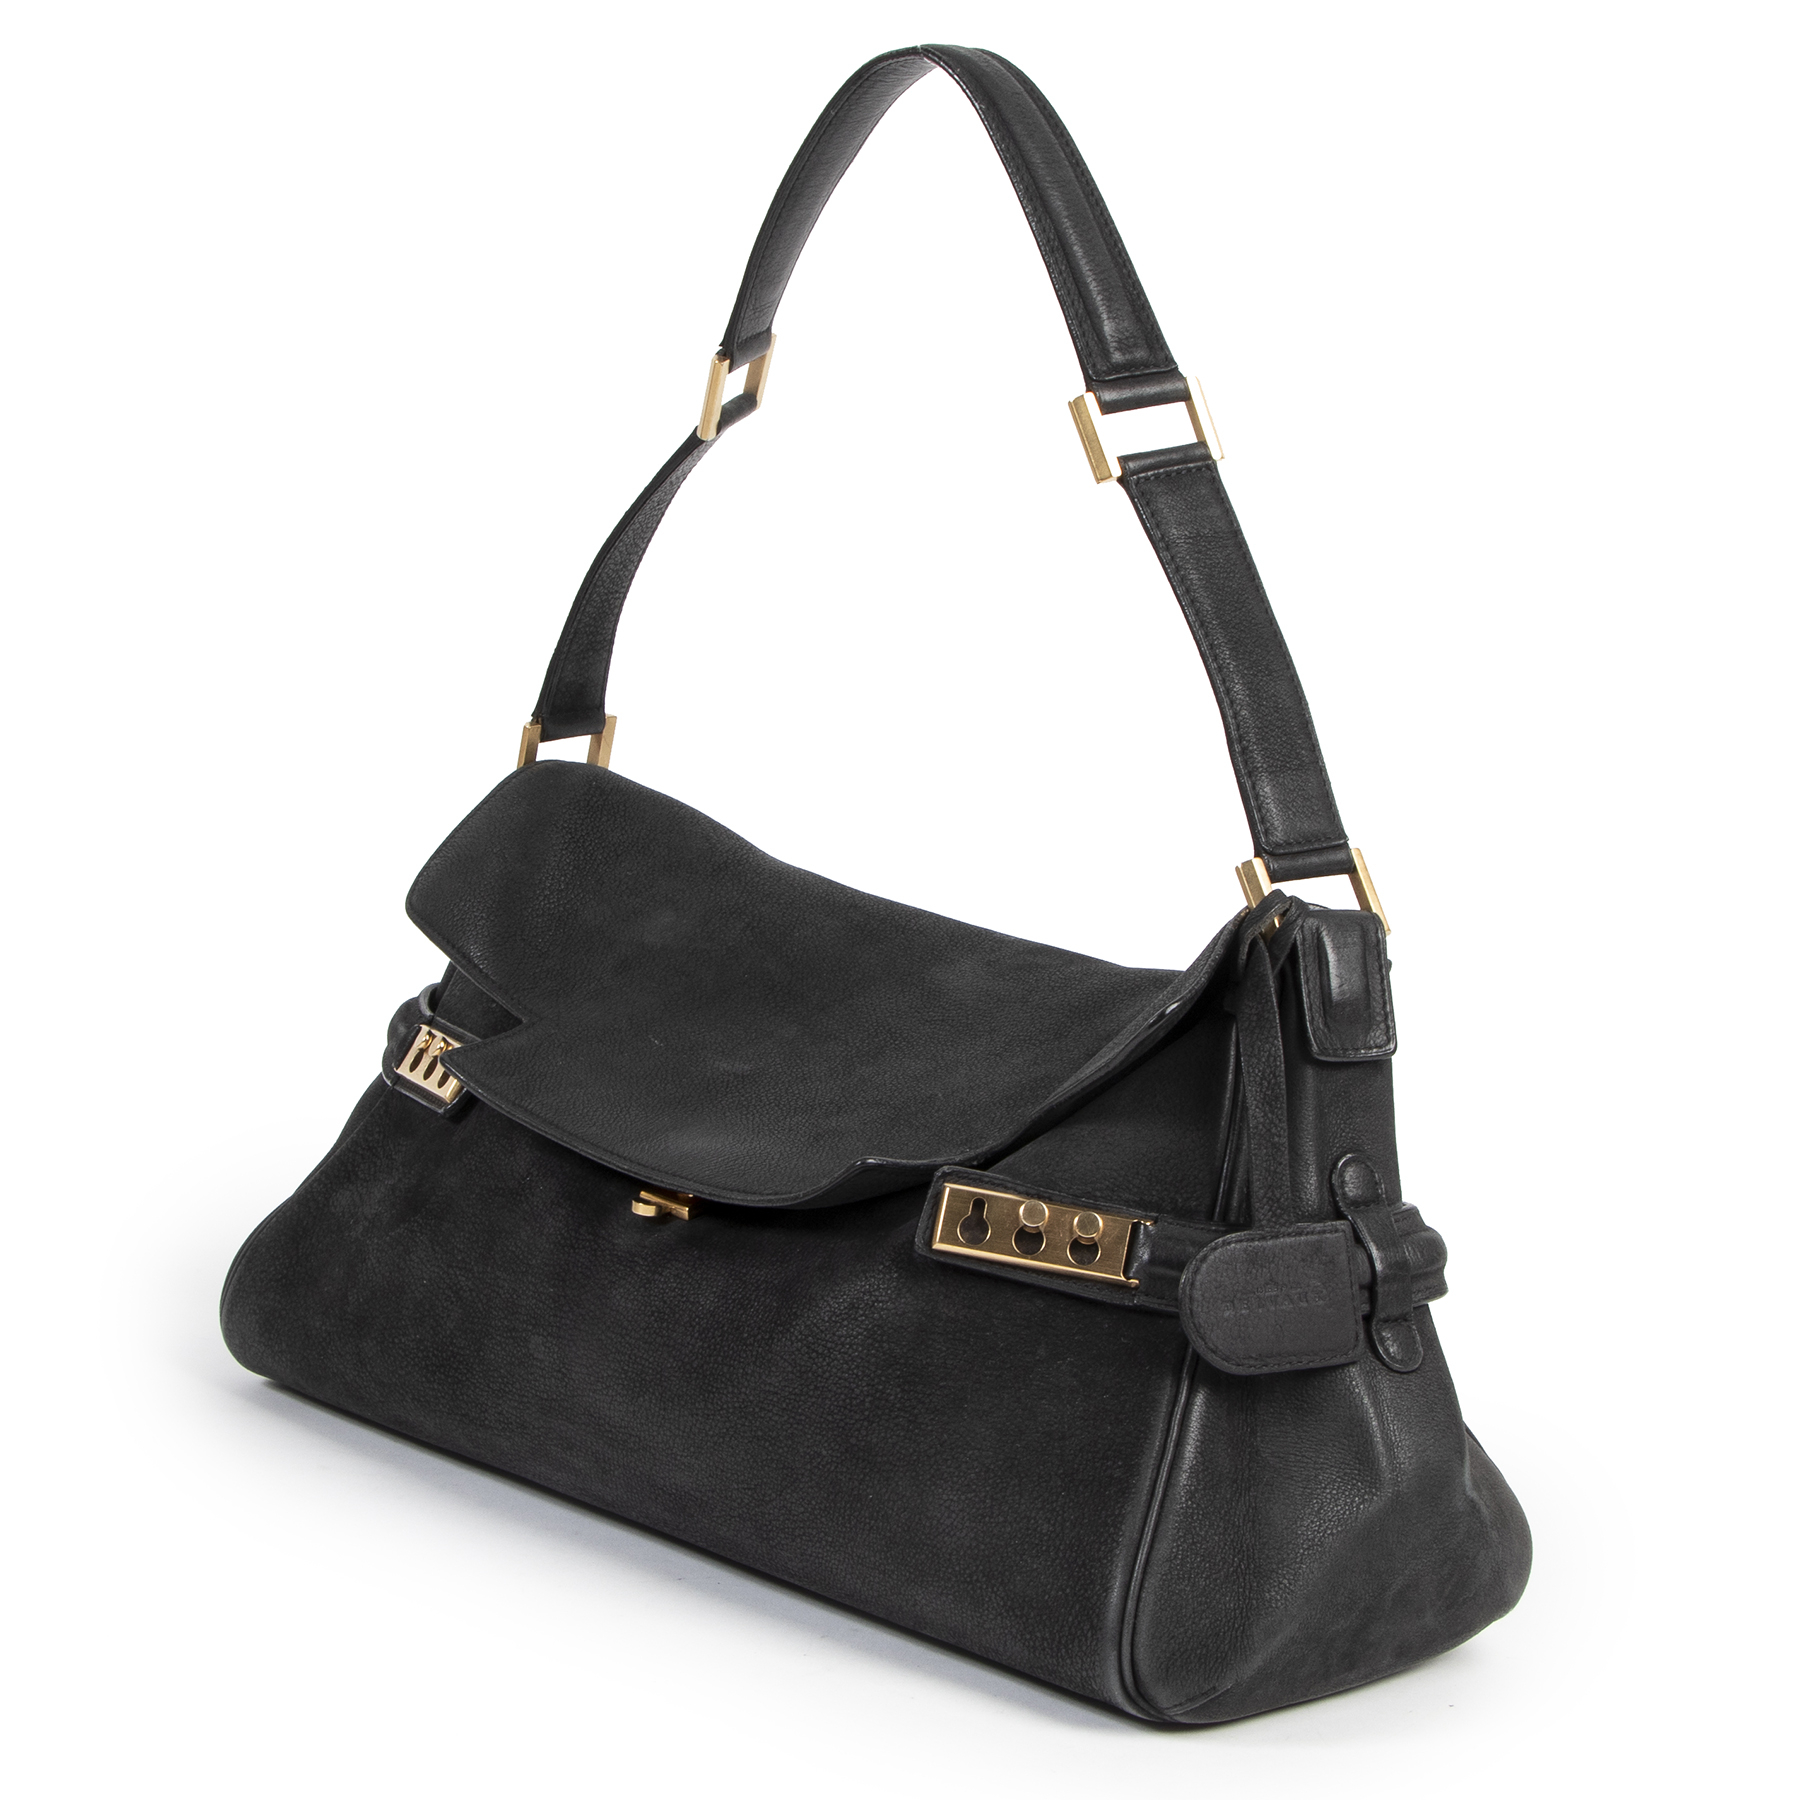 Delvaux Black Tempete Souple for the best price online available at Labellov preloved and new designer bags and accessories.